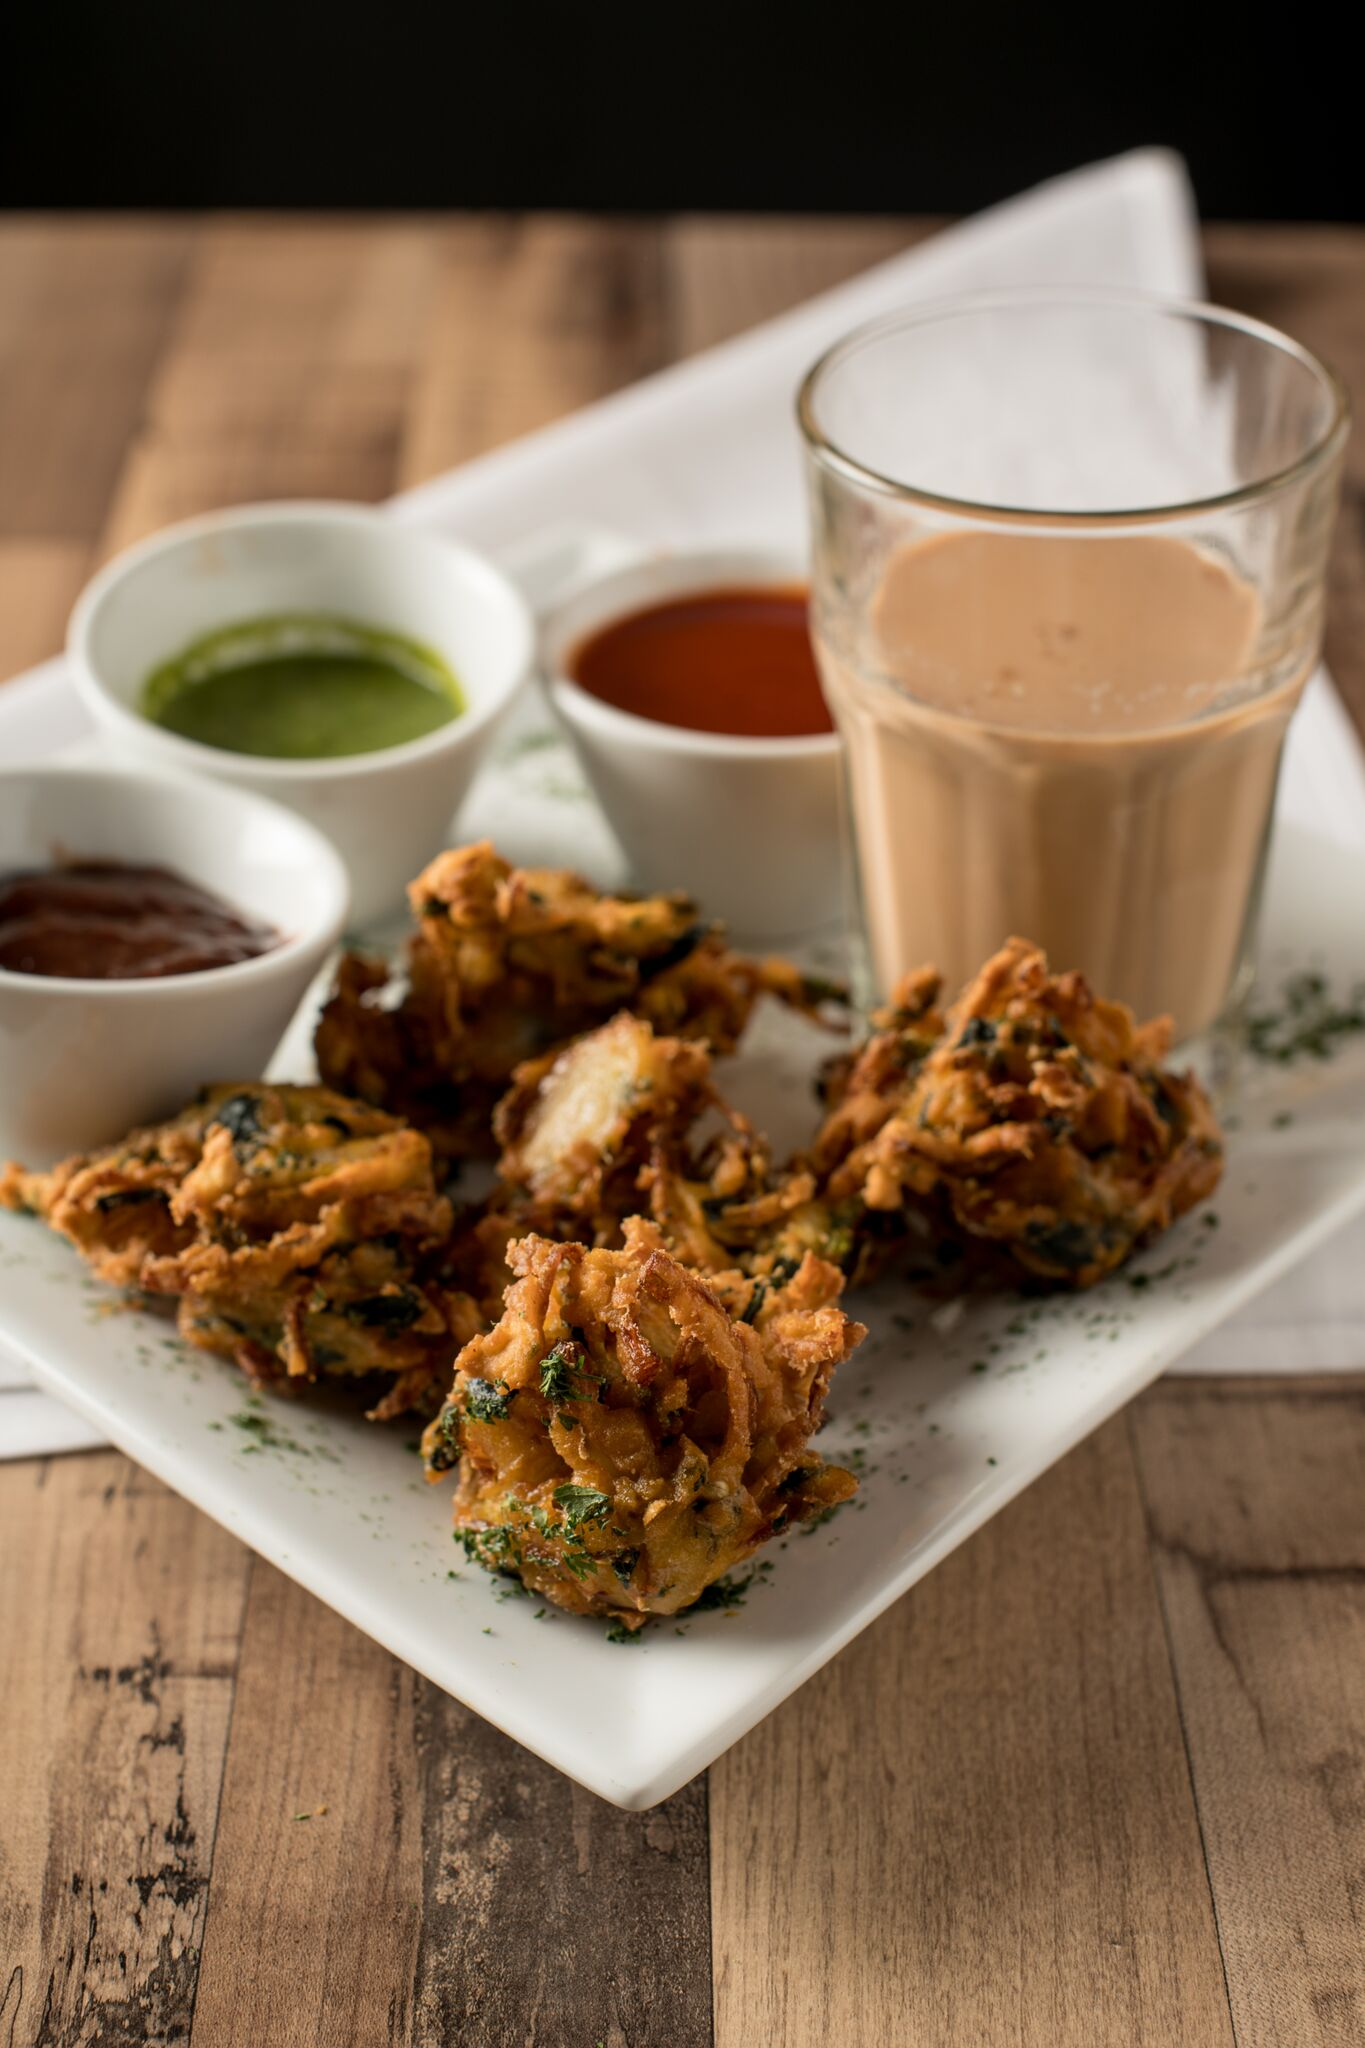 Pakora with chai from the monsoon section of the menu. Photograph by Emma McAlary.